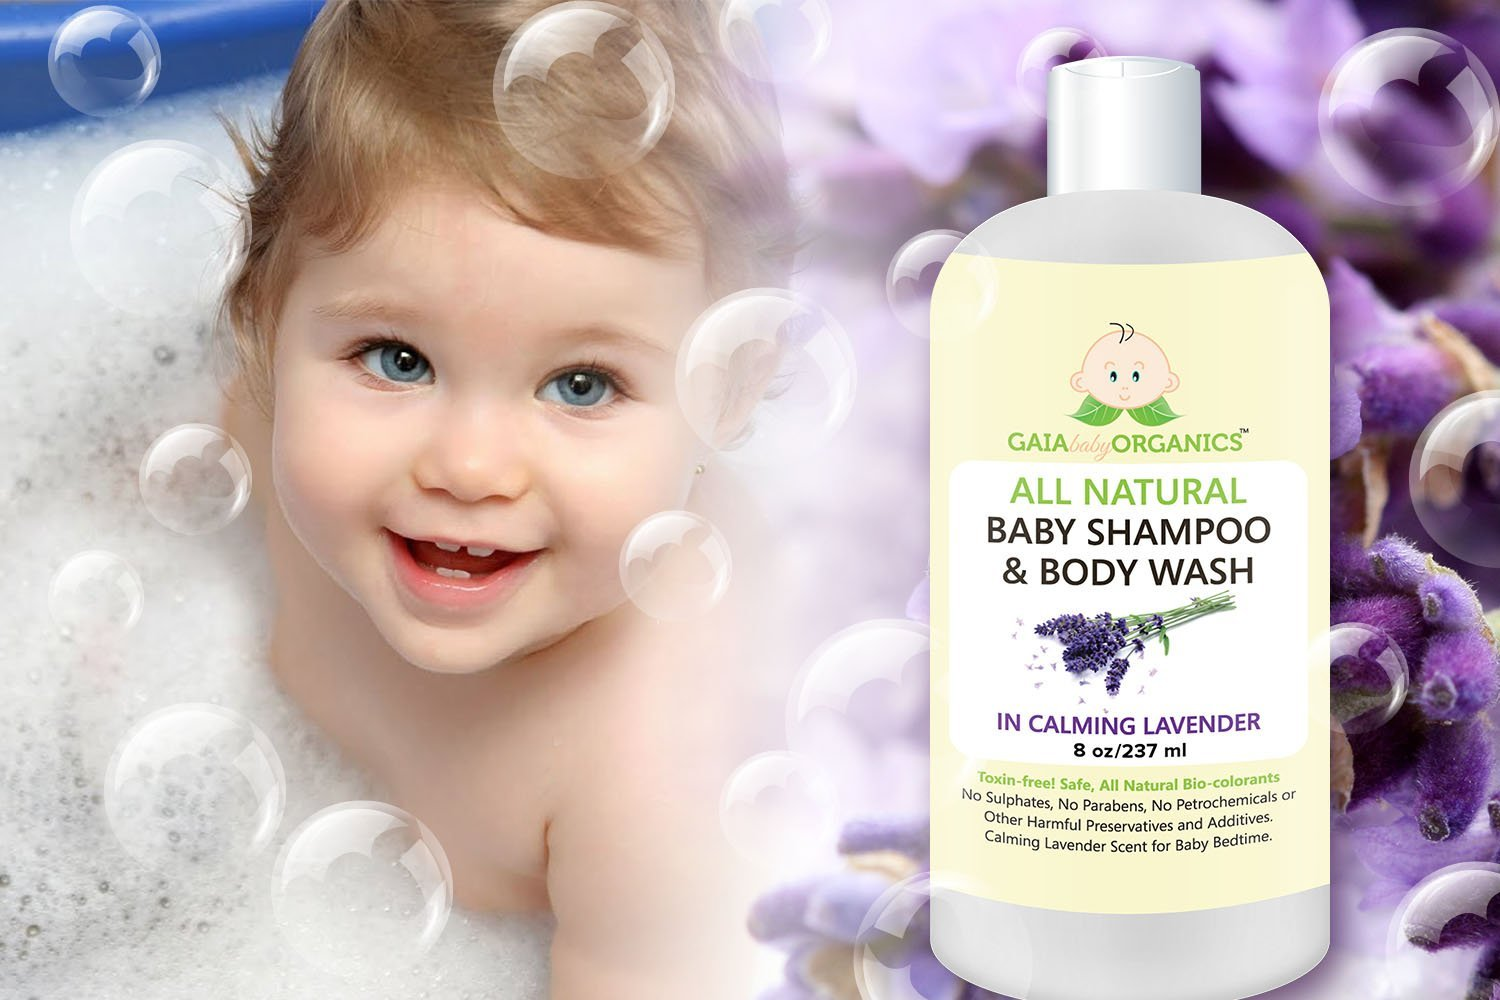 LIMITED TIME OFFER!!! Gaia Organics Baby Shampoo #organicbabyshampoo